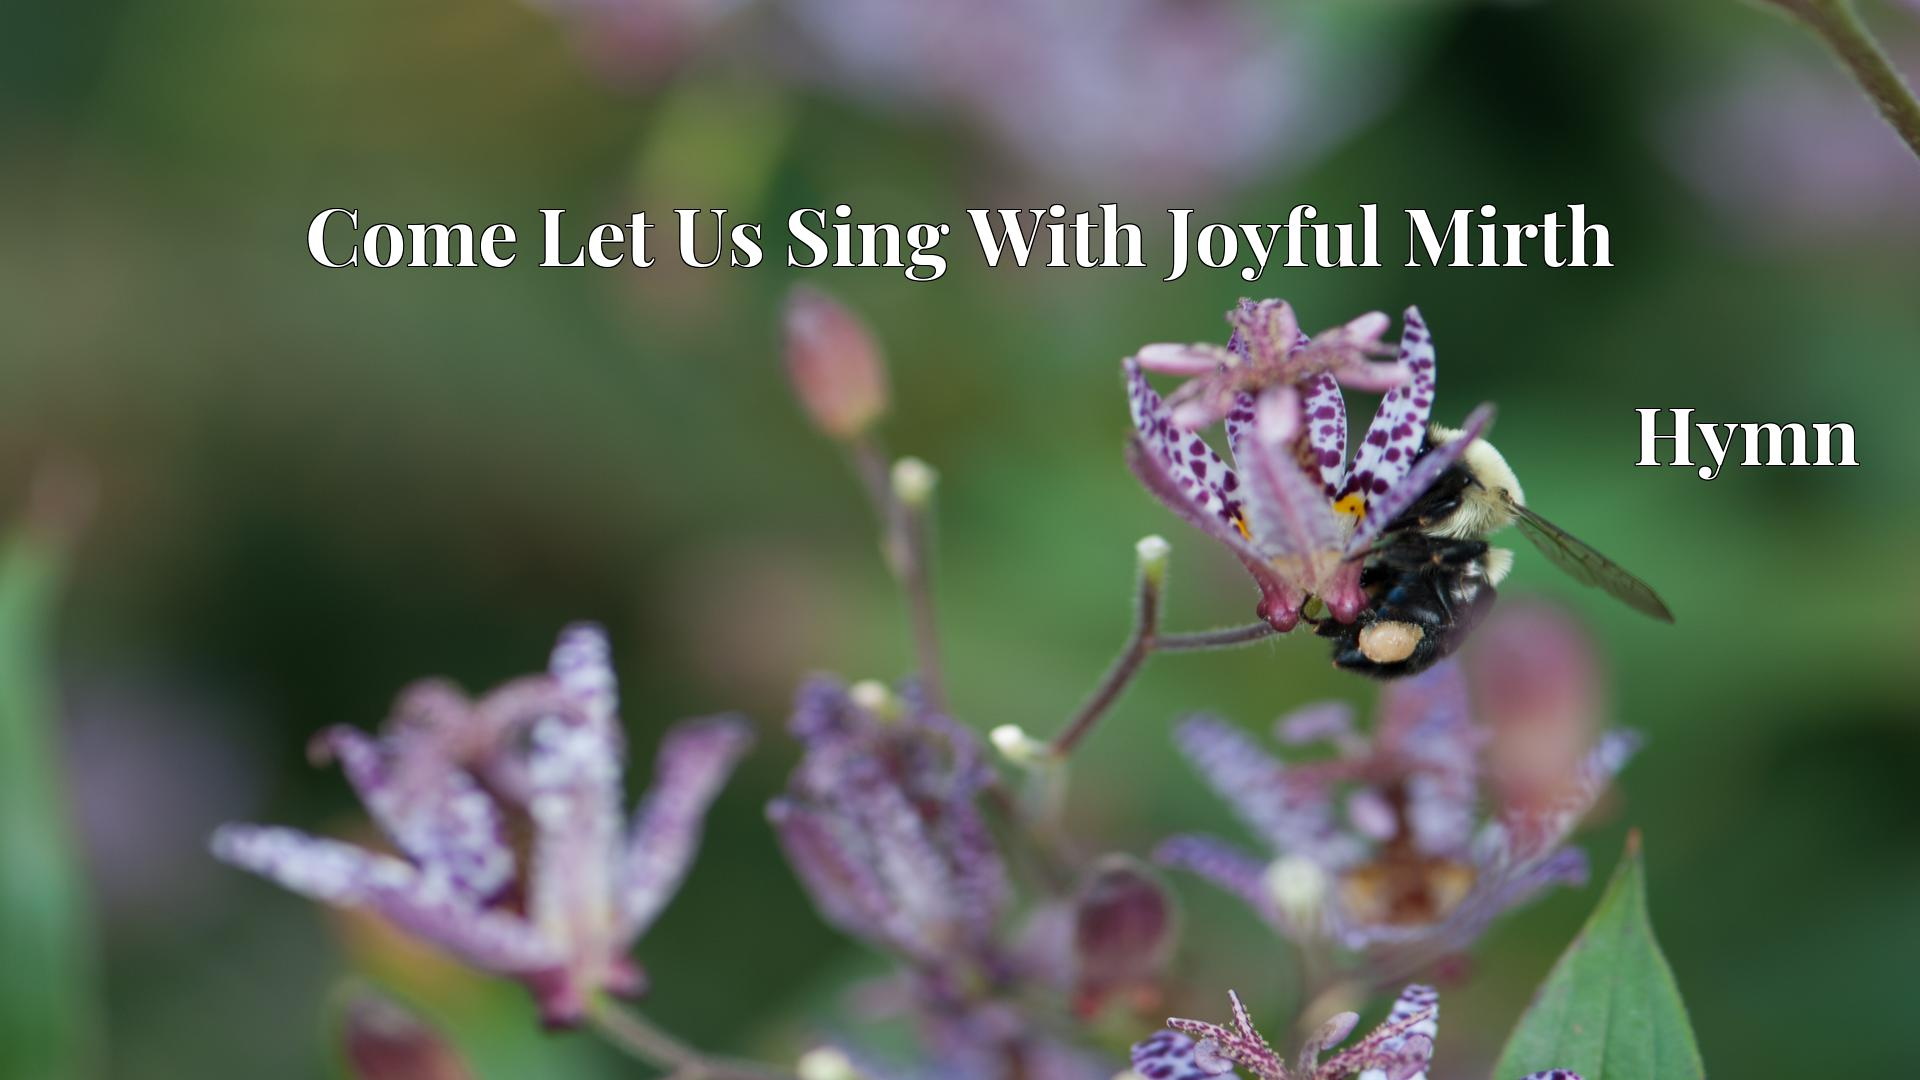 Come Let Us Sing With Joyful Mirth - Hymn